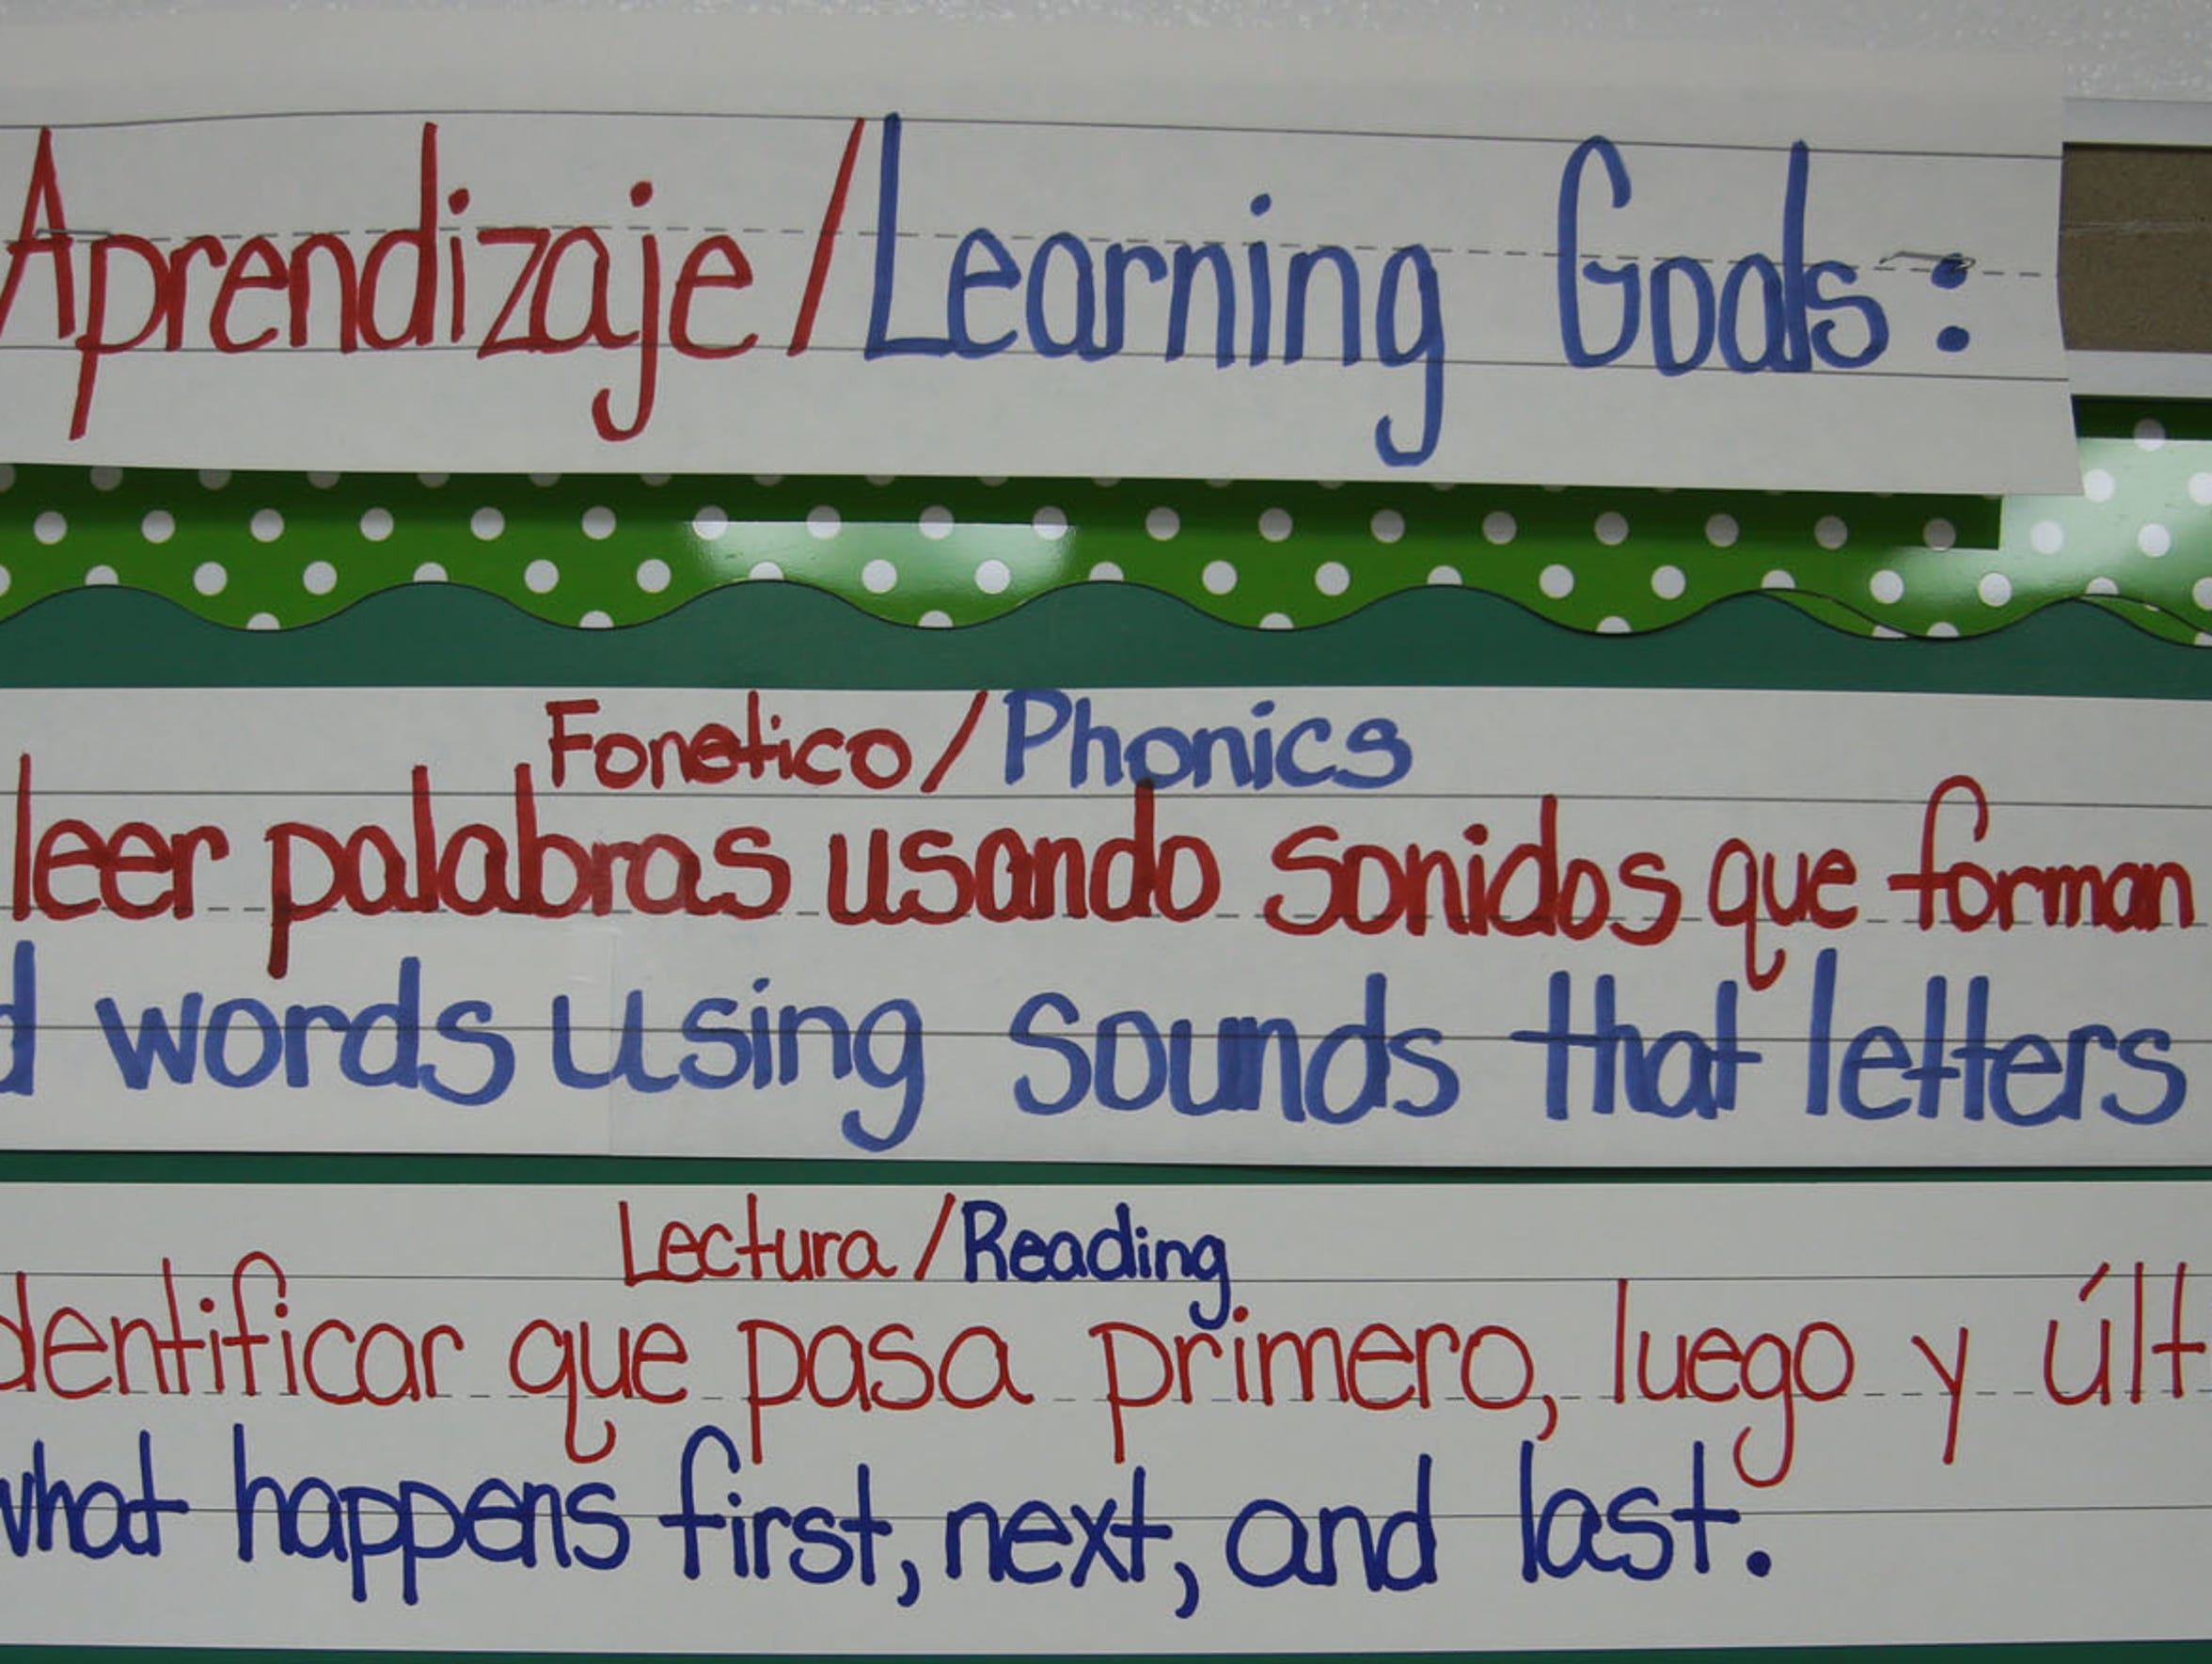 Phonics, reading lessons are displayed in English and